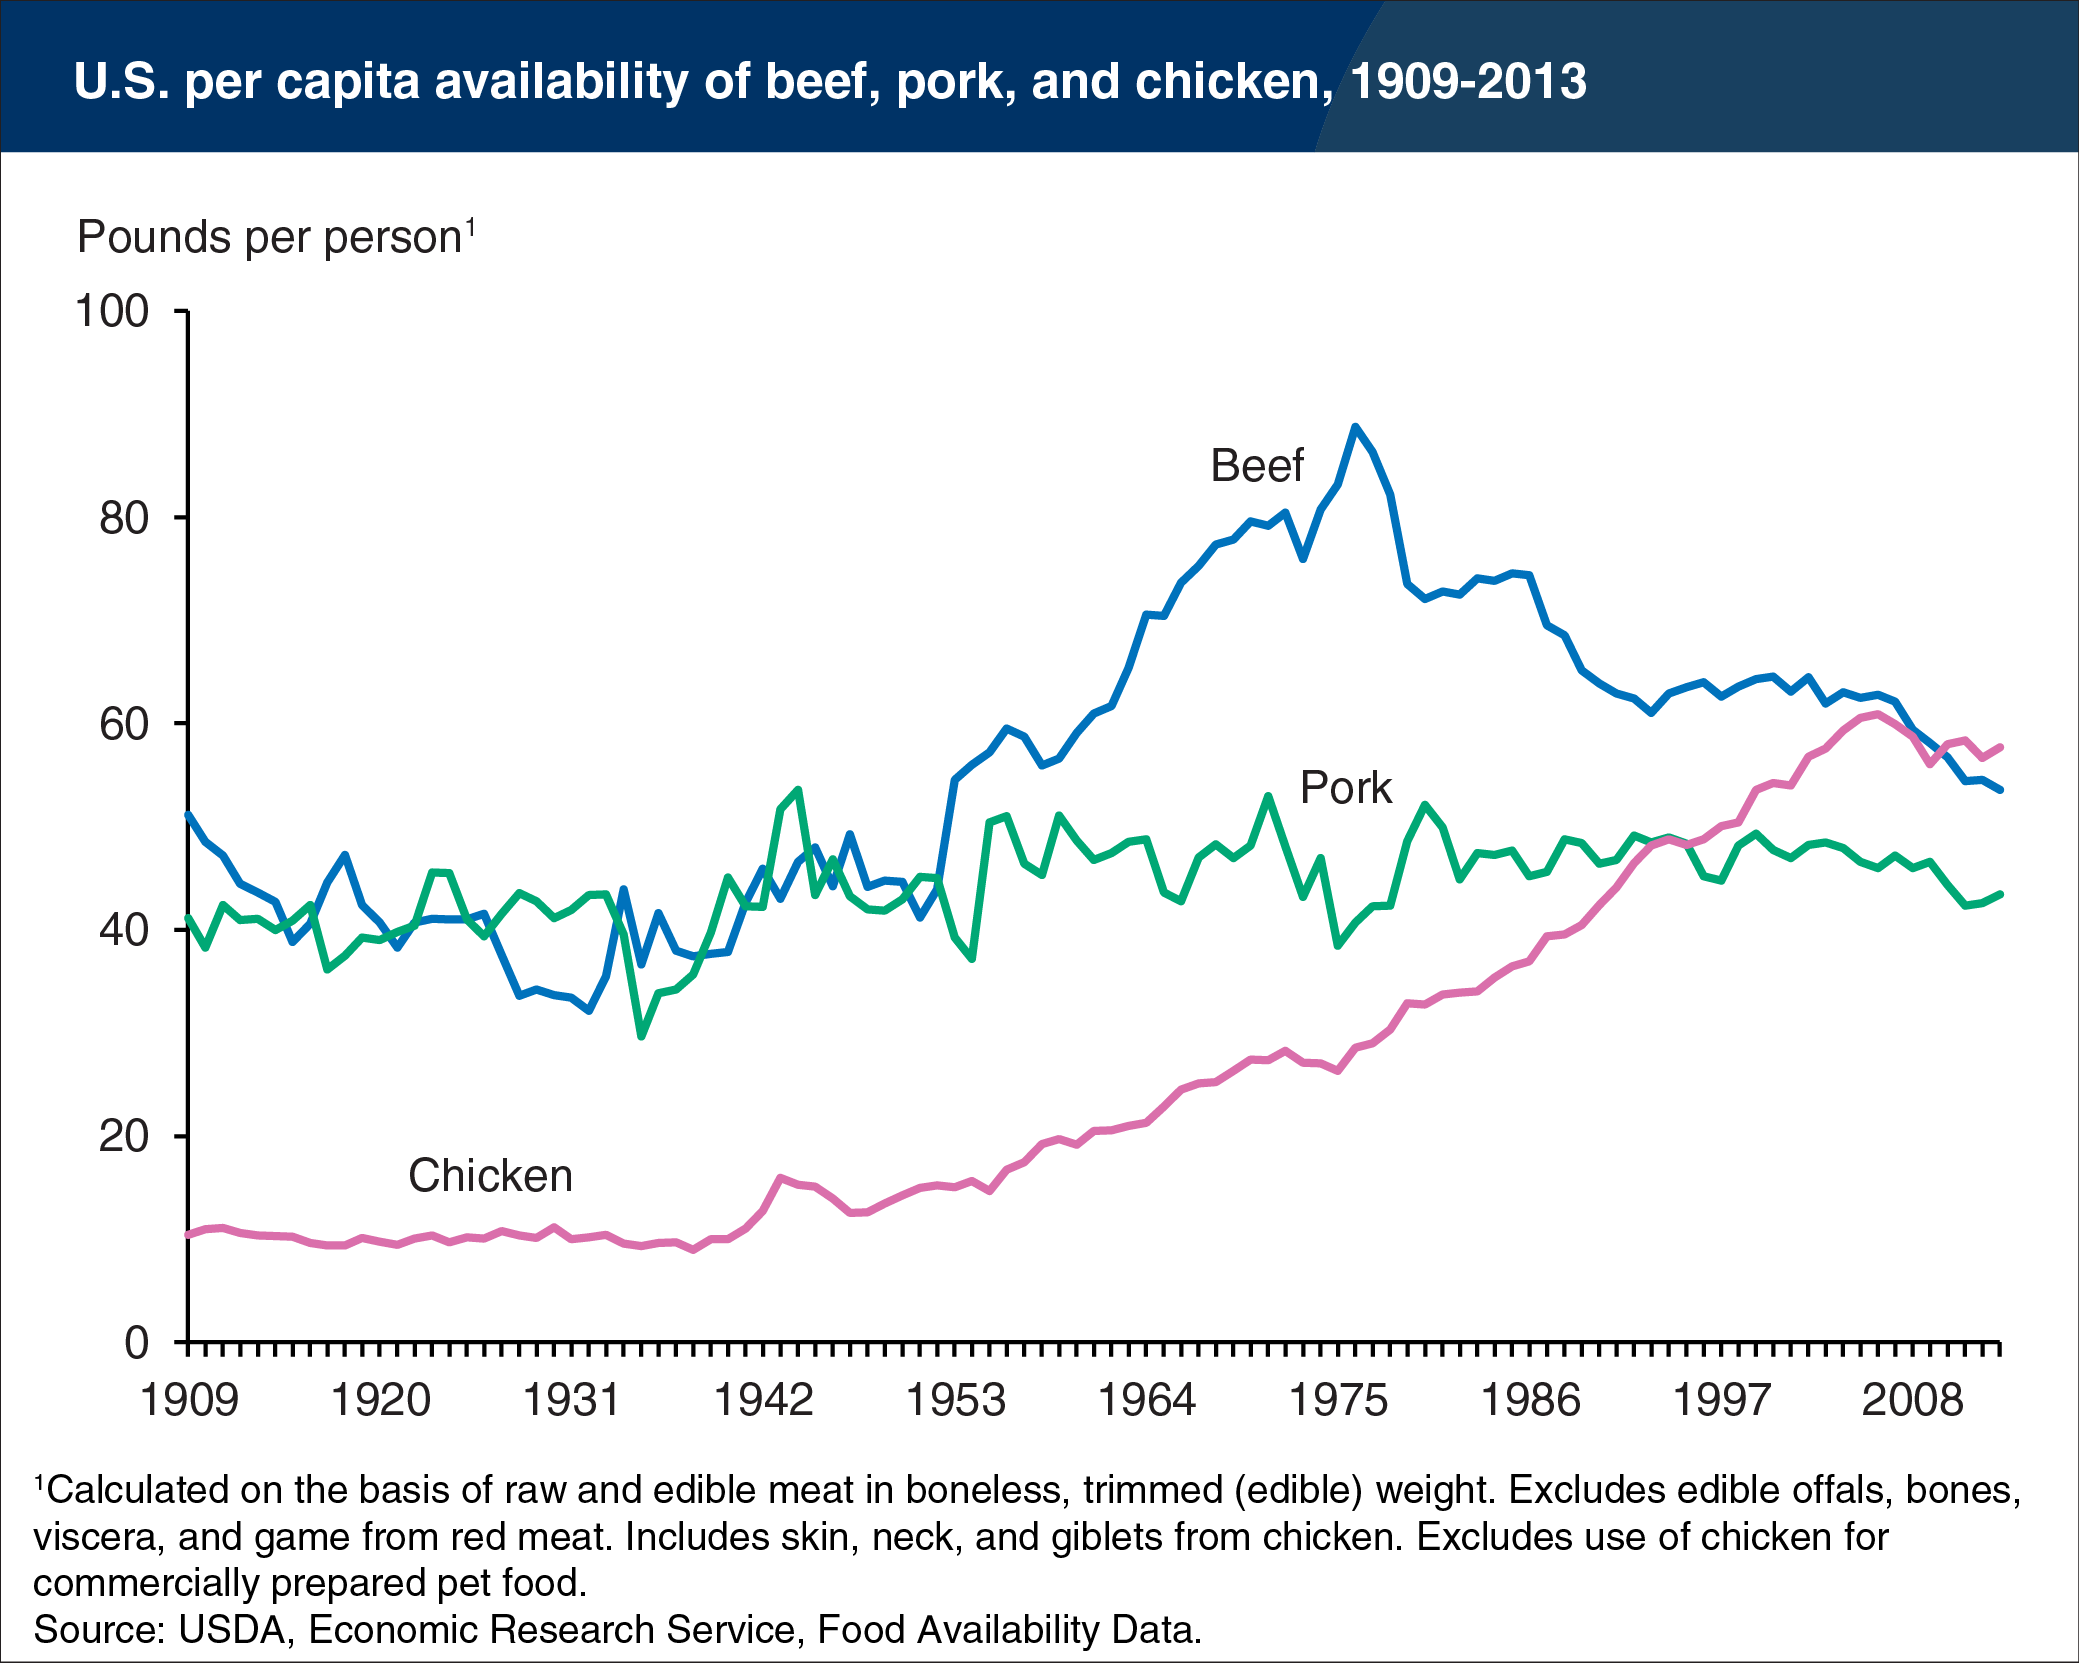 https://www.ers.usda.gov/webdocs/charts/62884/meat-availability.png?v=42394